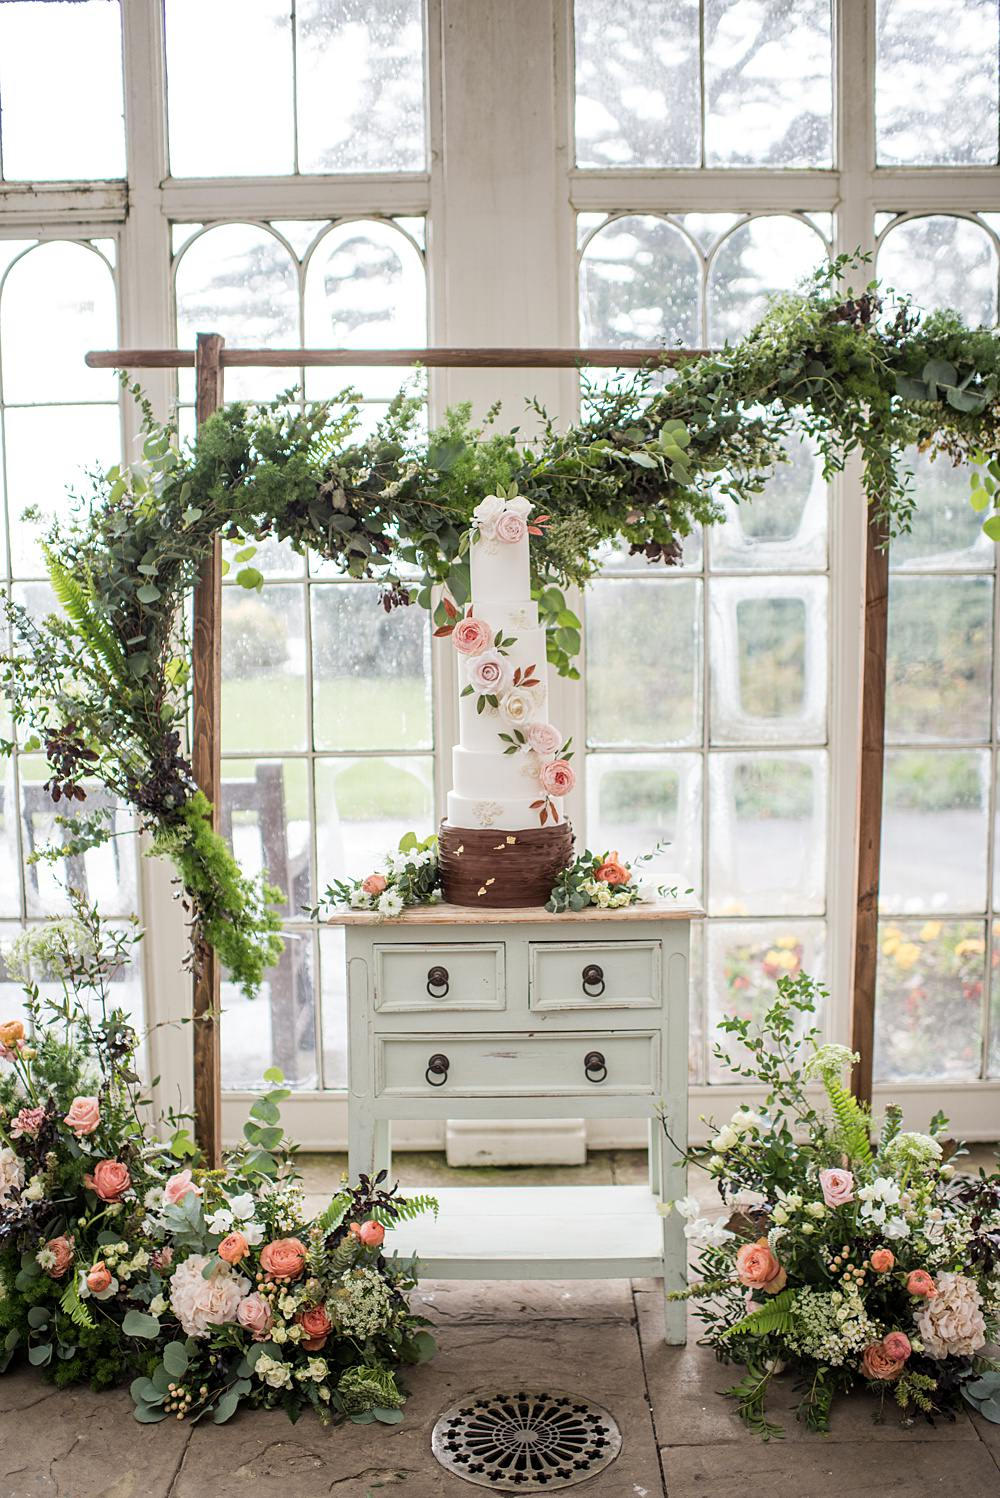 Cake Table Flower Arch Arbour Backdrop Greenery Foliage Dresser Peach Gold Wedding Ideas Jane Beadnell Photography